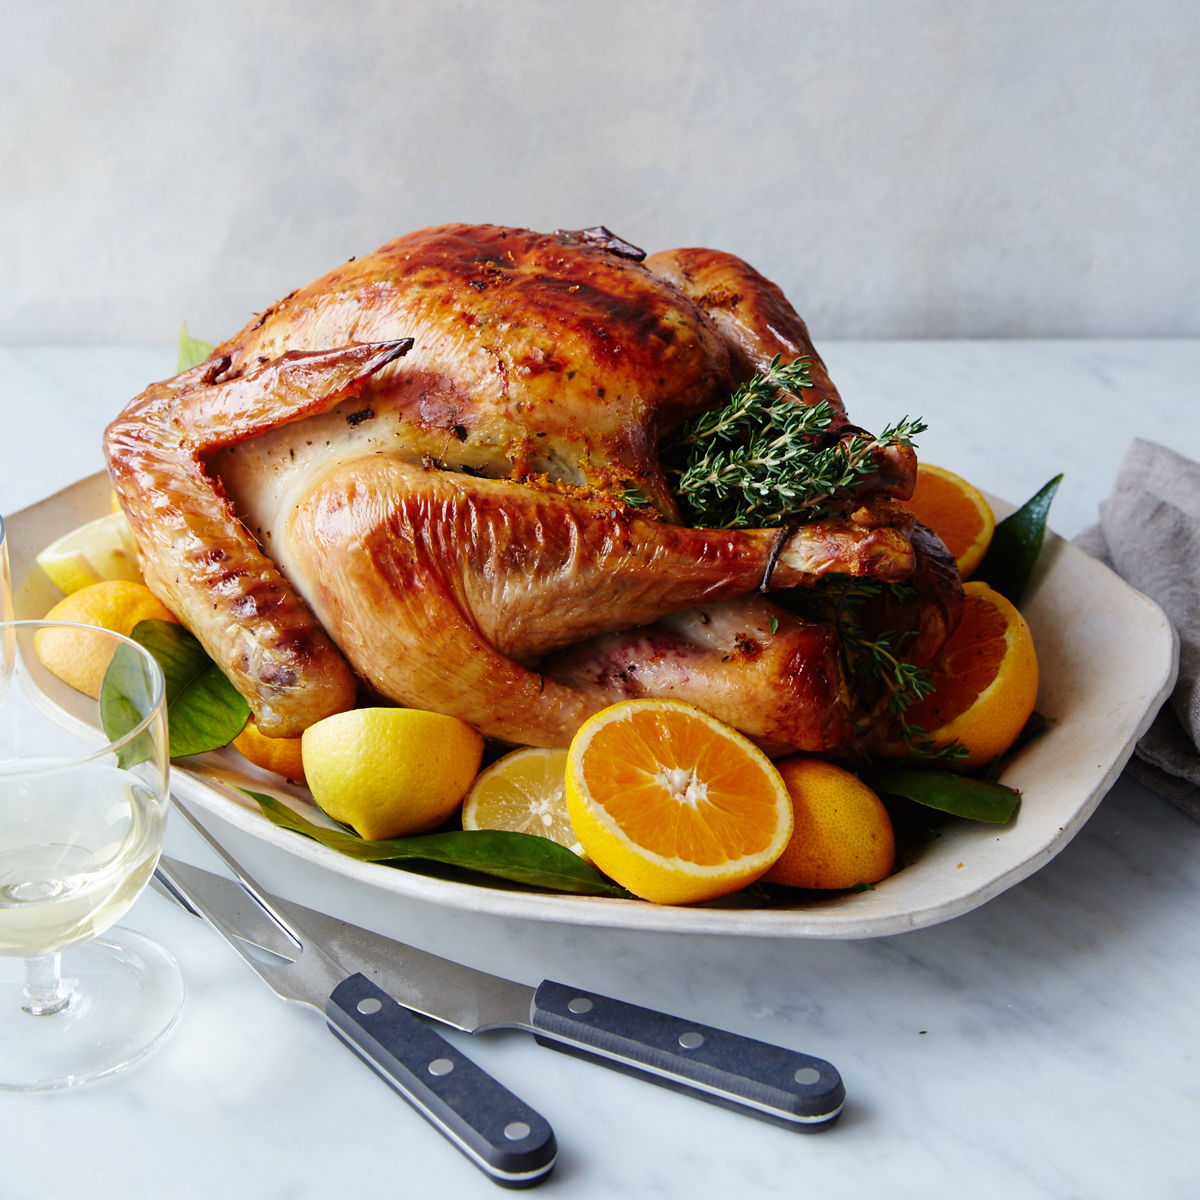 5 Easy Ways to Ruin the Thanksgiving Turkey